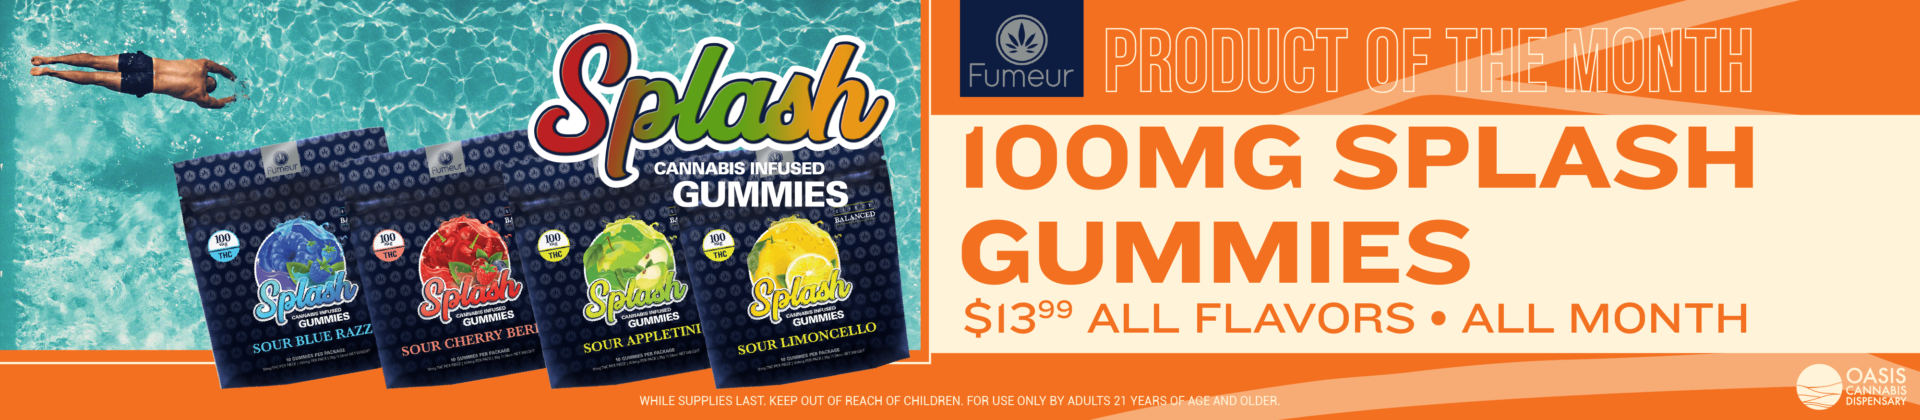 PRODUCT OF THE MONTH 100MG Splash Gummies by Fumeur